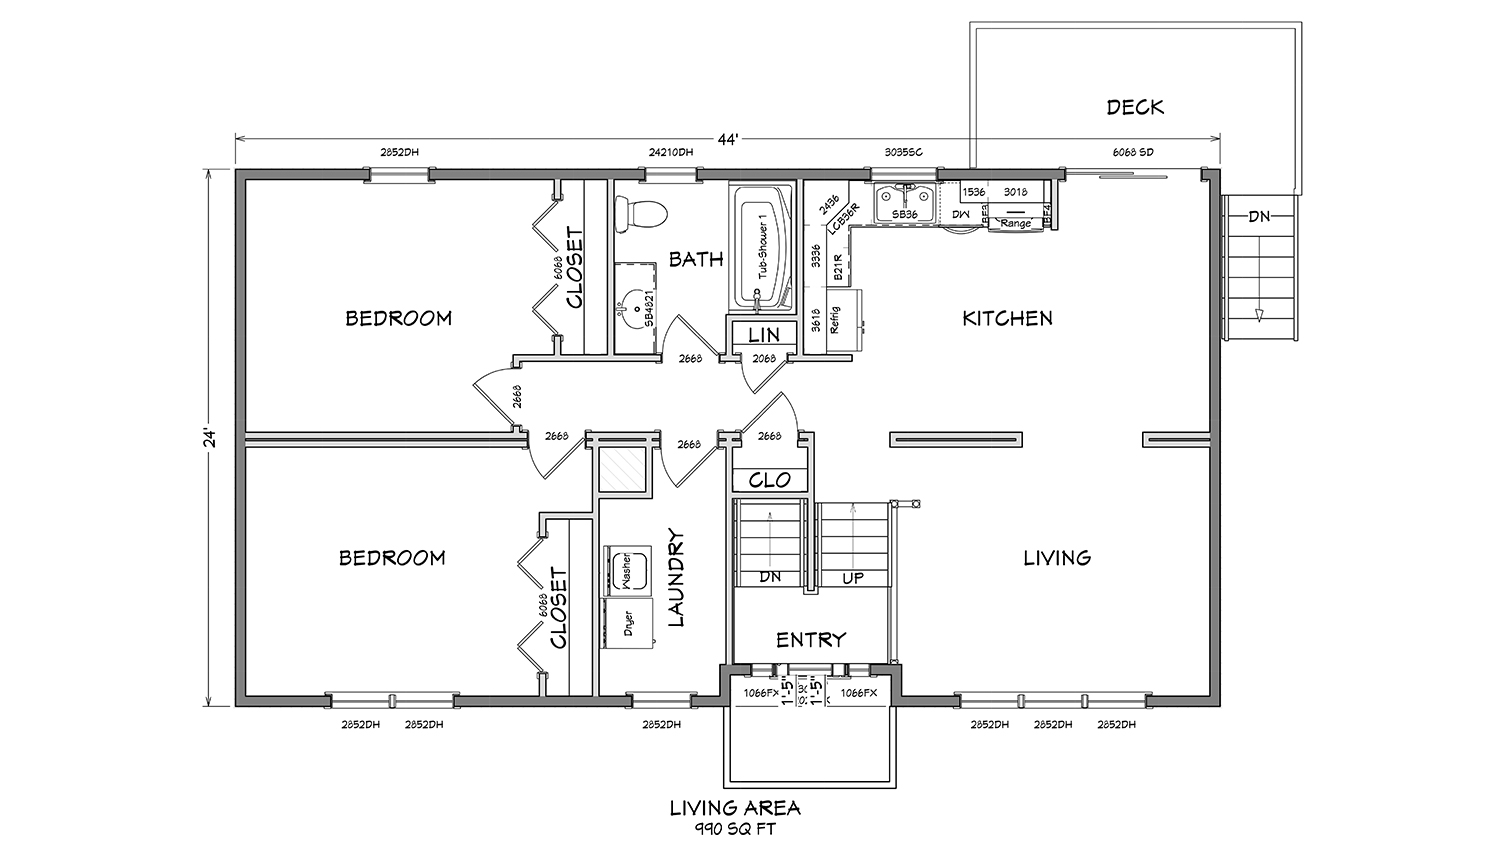 Bl001 cape cod modular home floor plan 01 glenco inc for Cape cod house floor plans